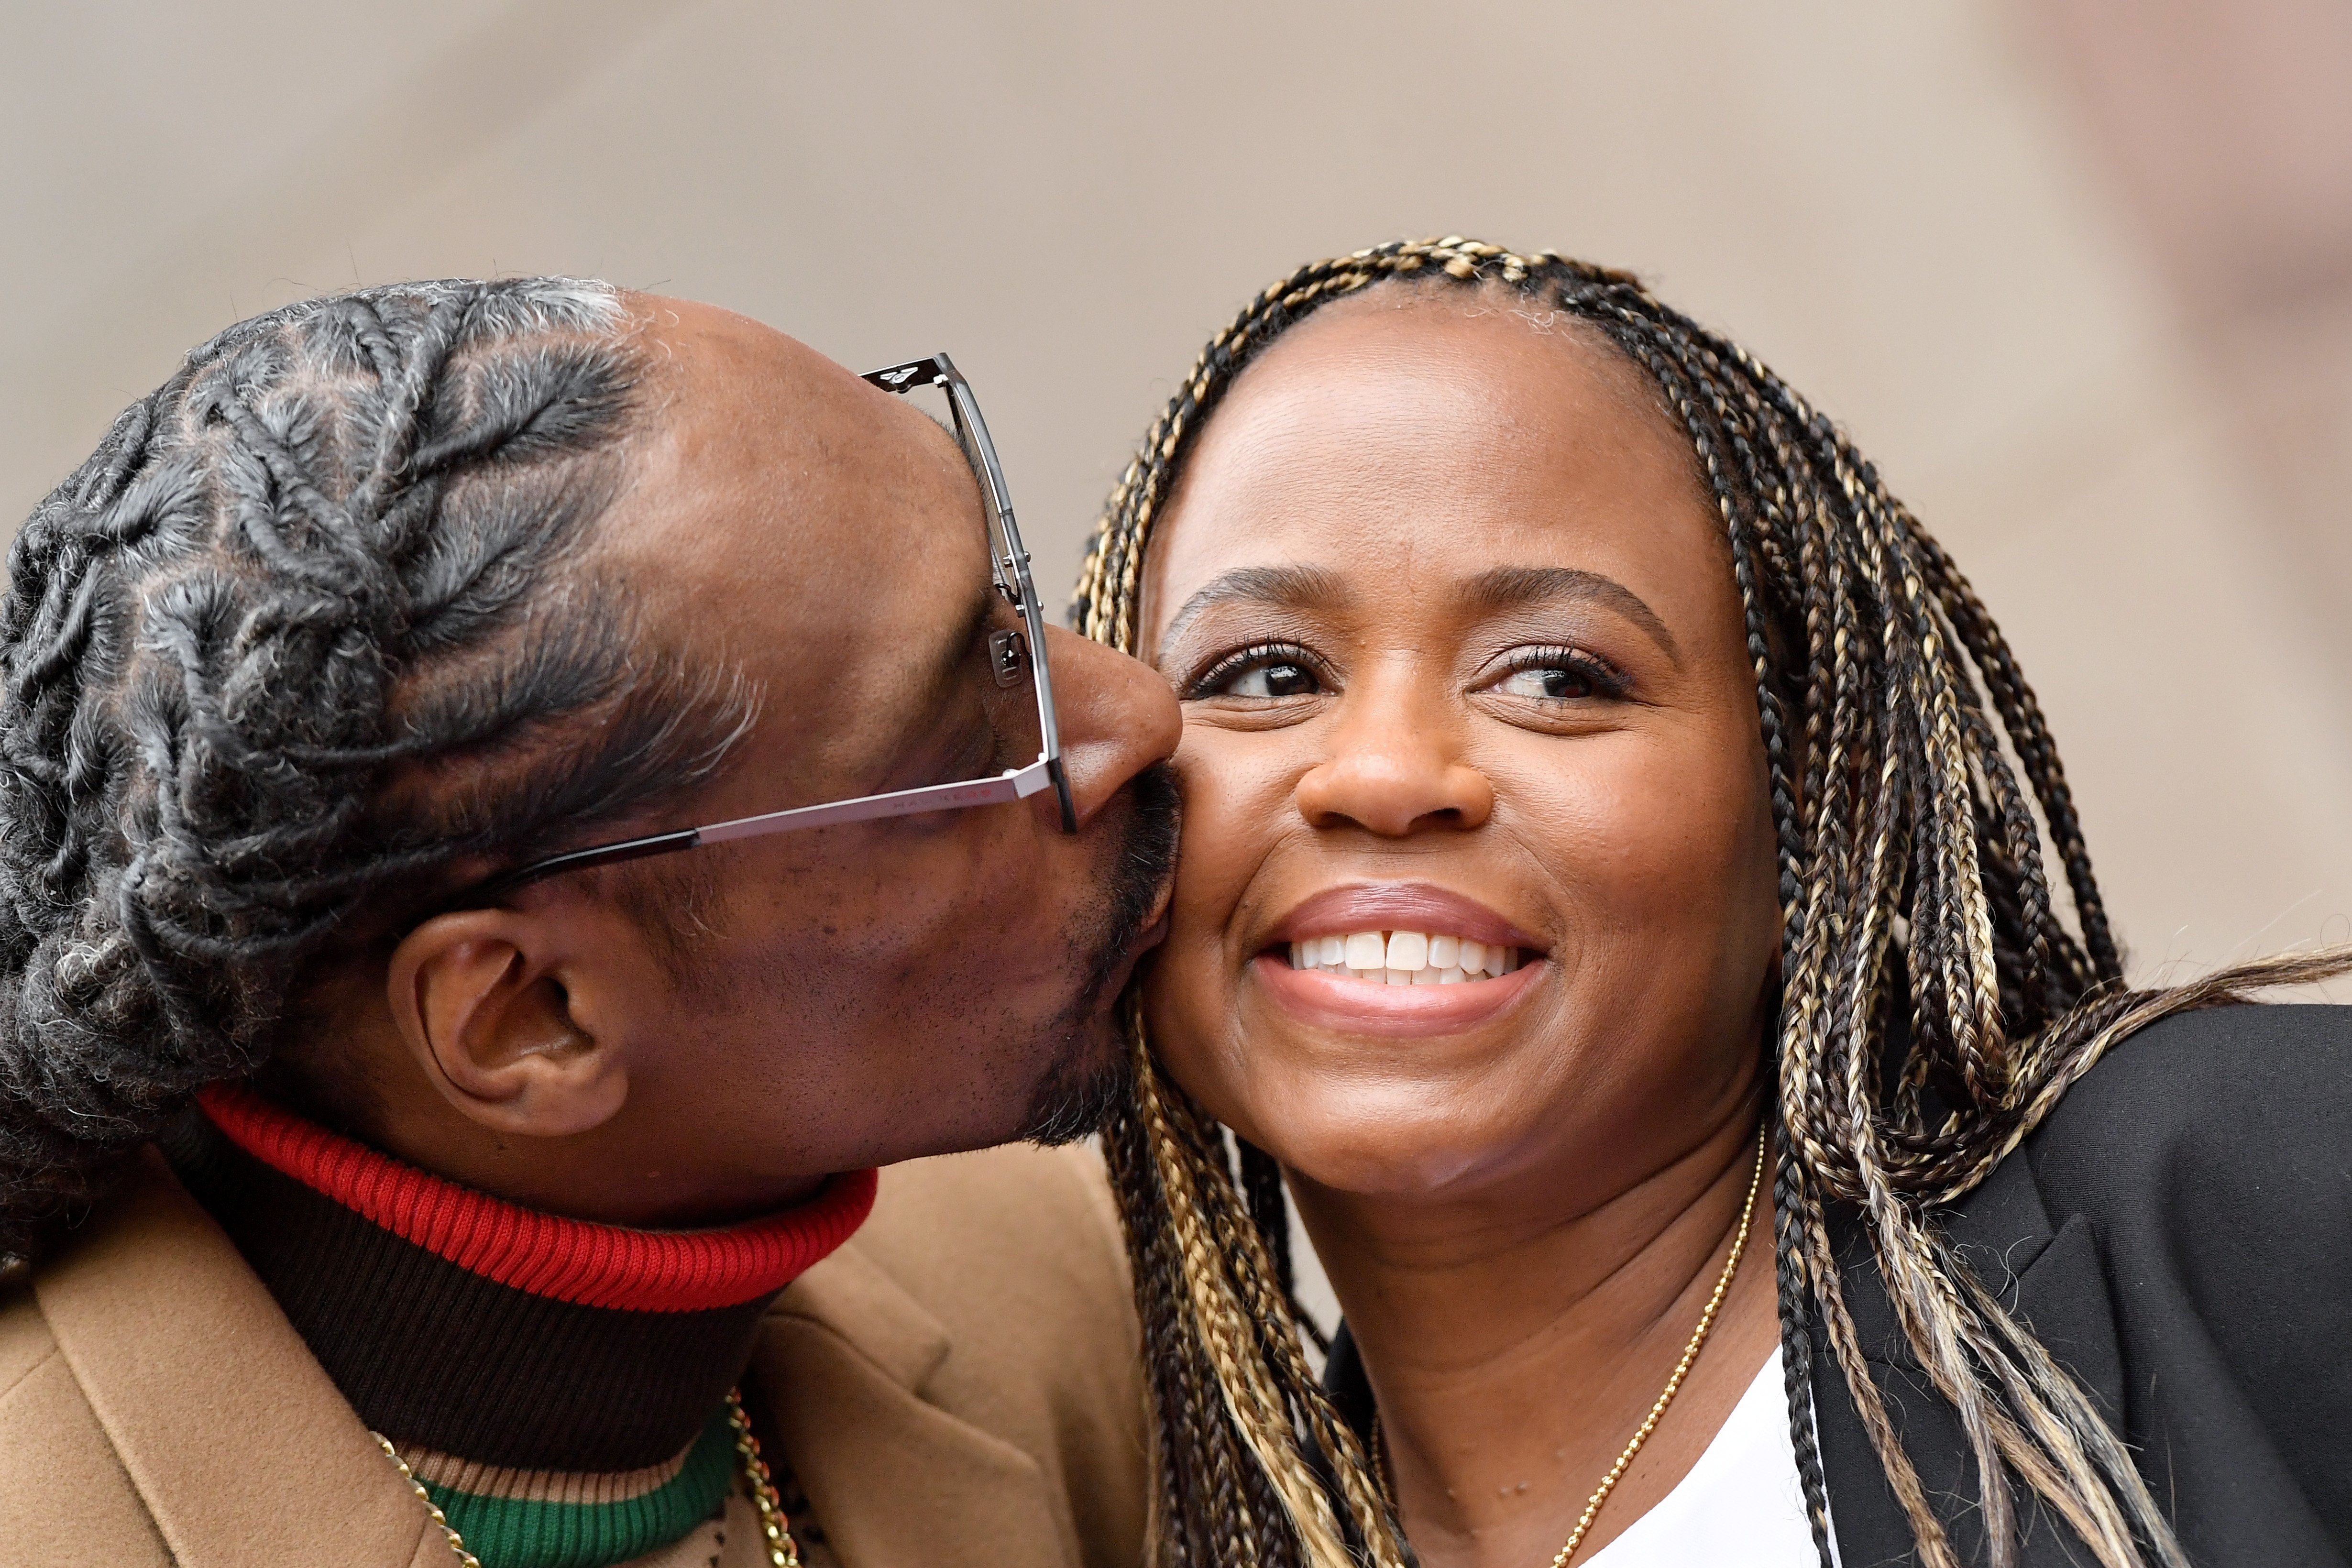 Snoop Dogg and Shante Broadus at a ceremony honoring Snoop Dogg with a star on the Hollywood Walk of Fame on November 19, 2018 in Hollywood, California.| Source: Getty Images